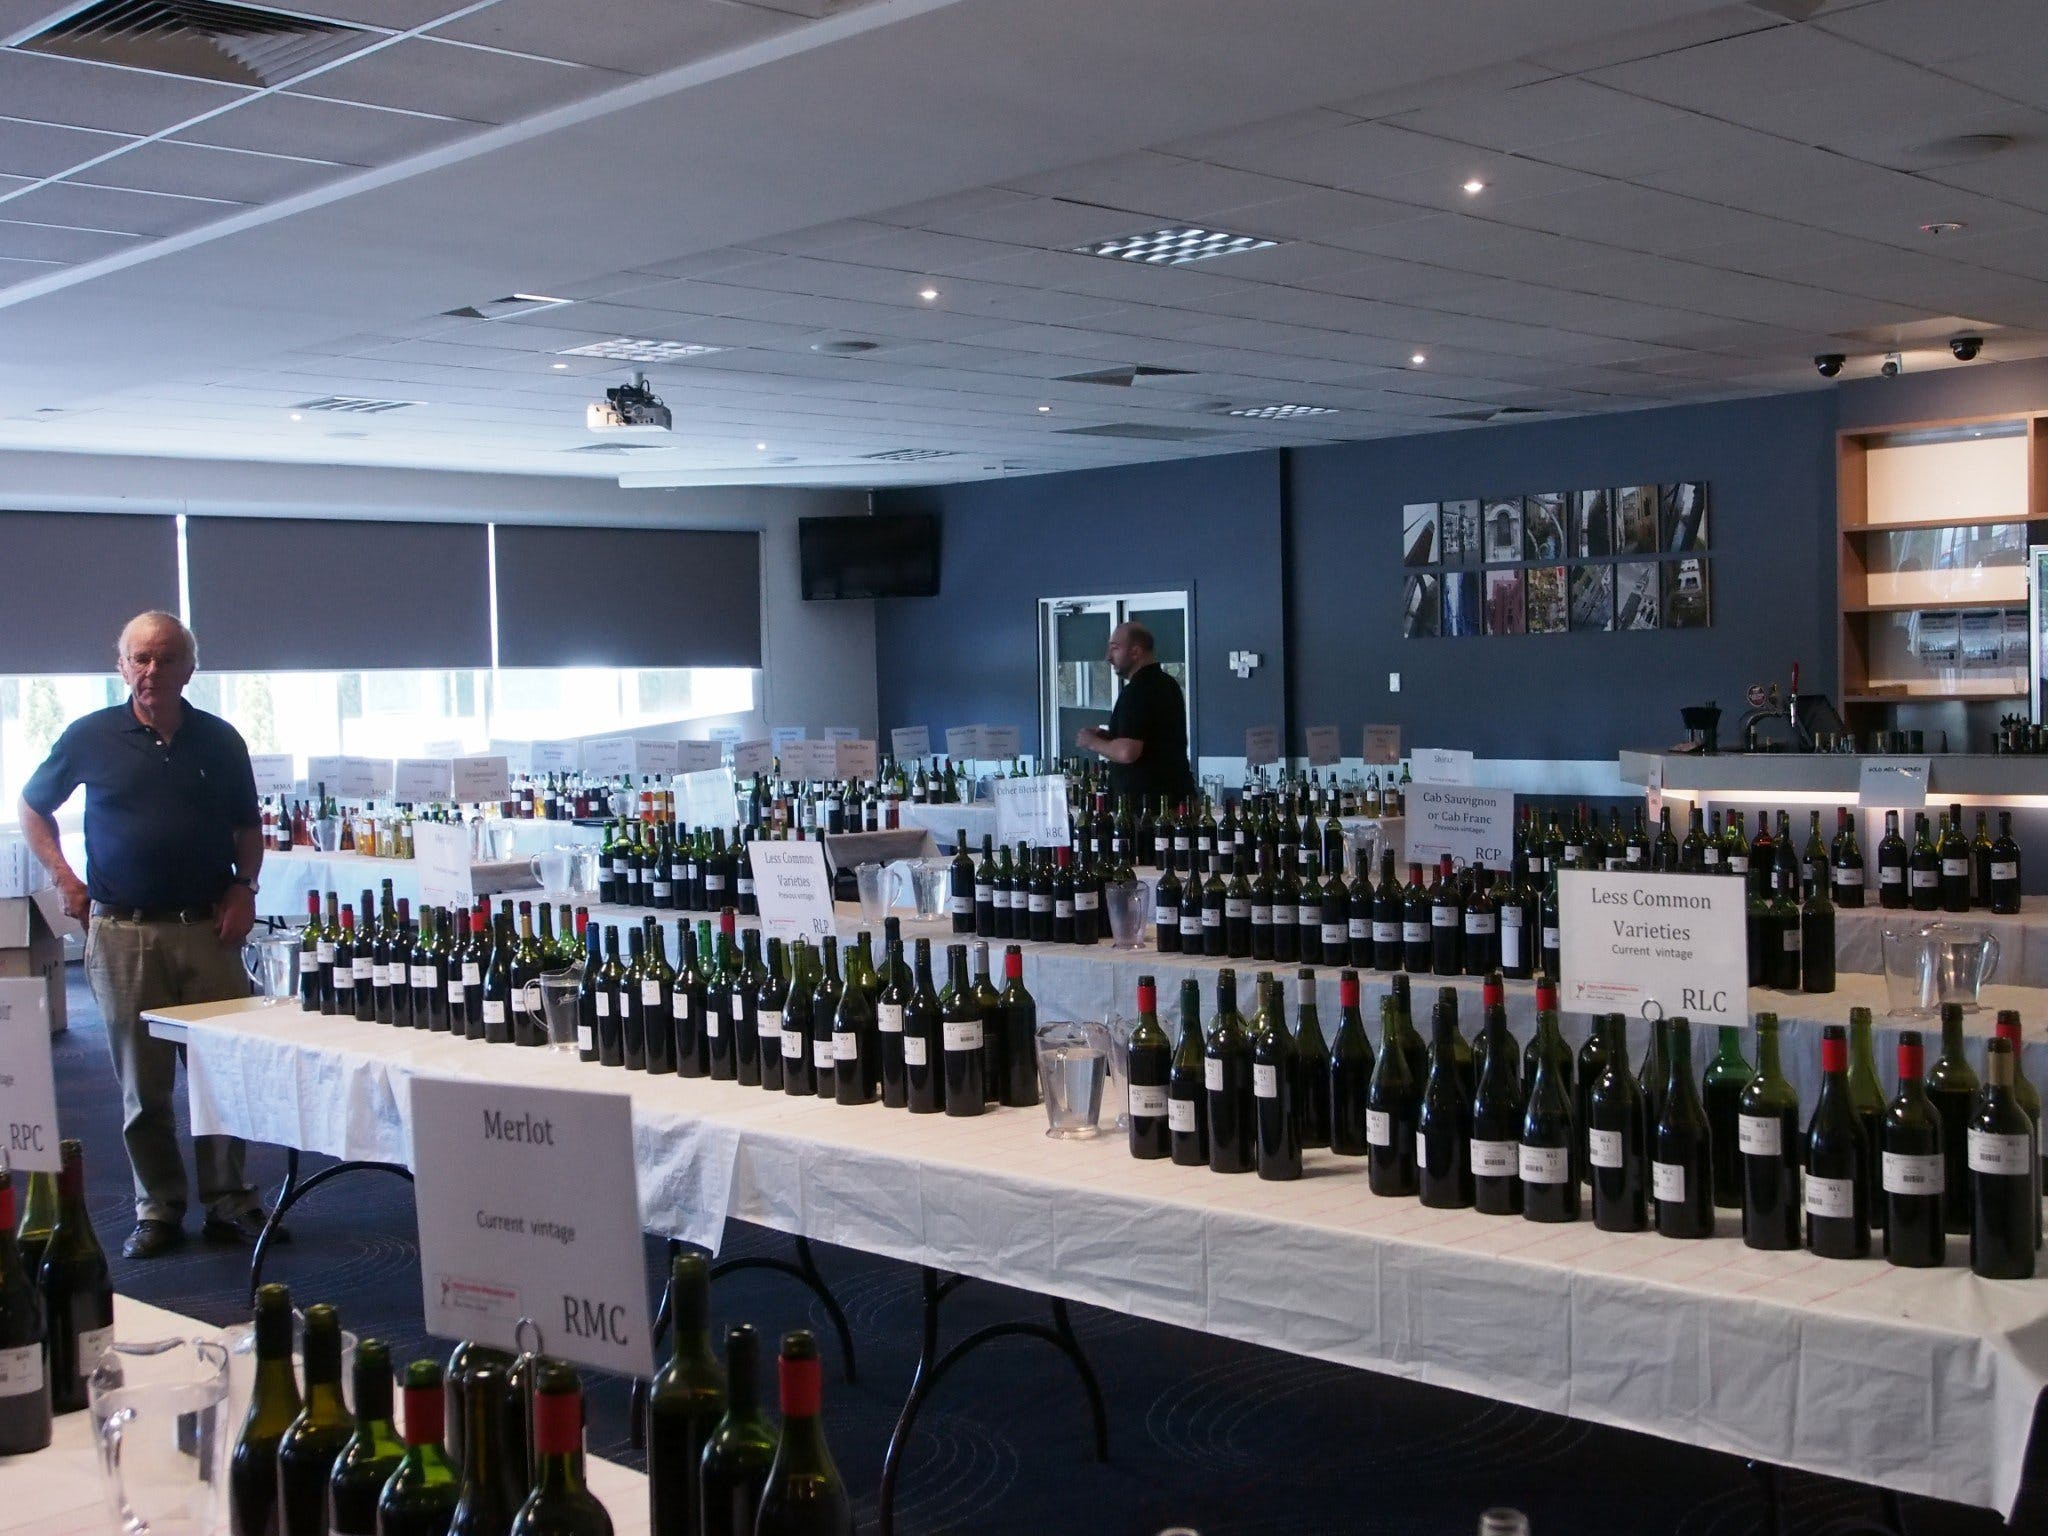 Eltham and District Wine Guild Annual Wine Show - 51st Annual Show - ACT Tourism